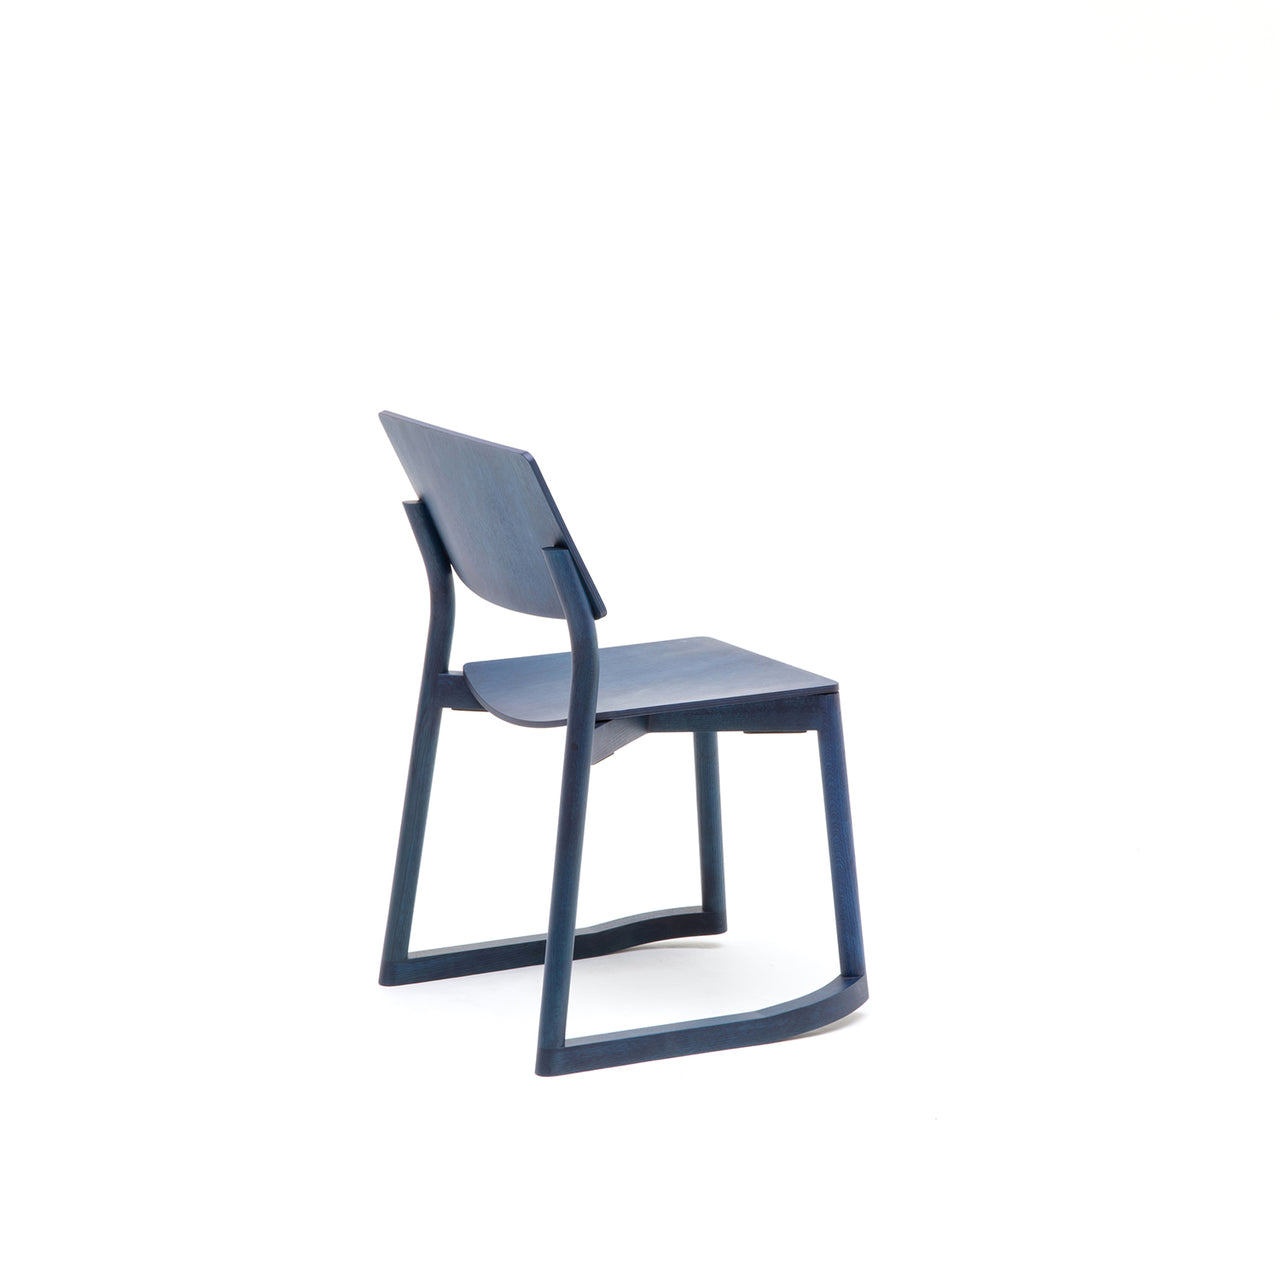 Marvelous Panorama Chair With Runners Buy Karimoku New Standard Onthecornerstone Fun Painted Chair Ideas Images Onthecornerstoneorg